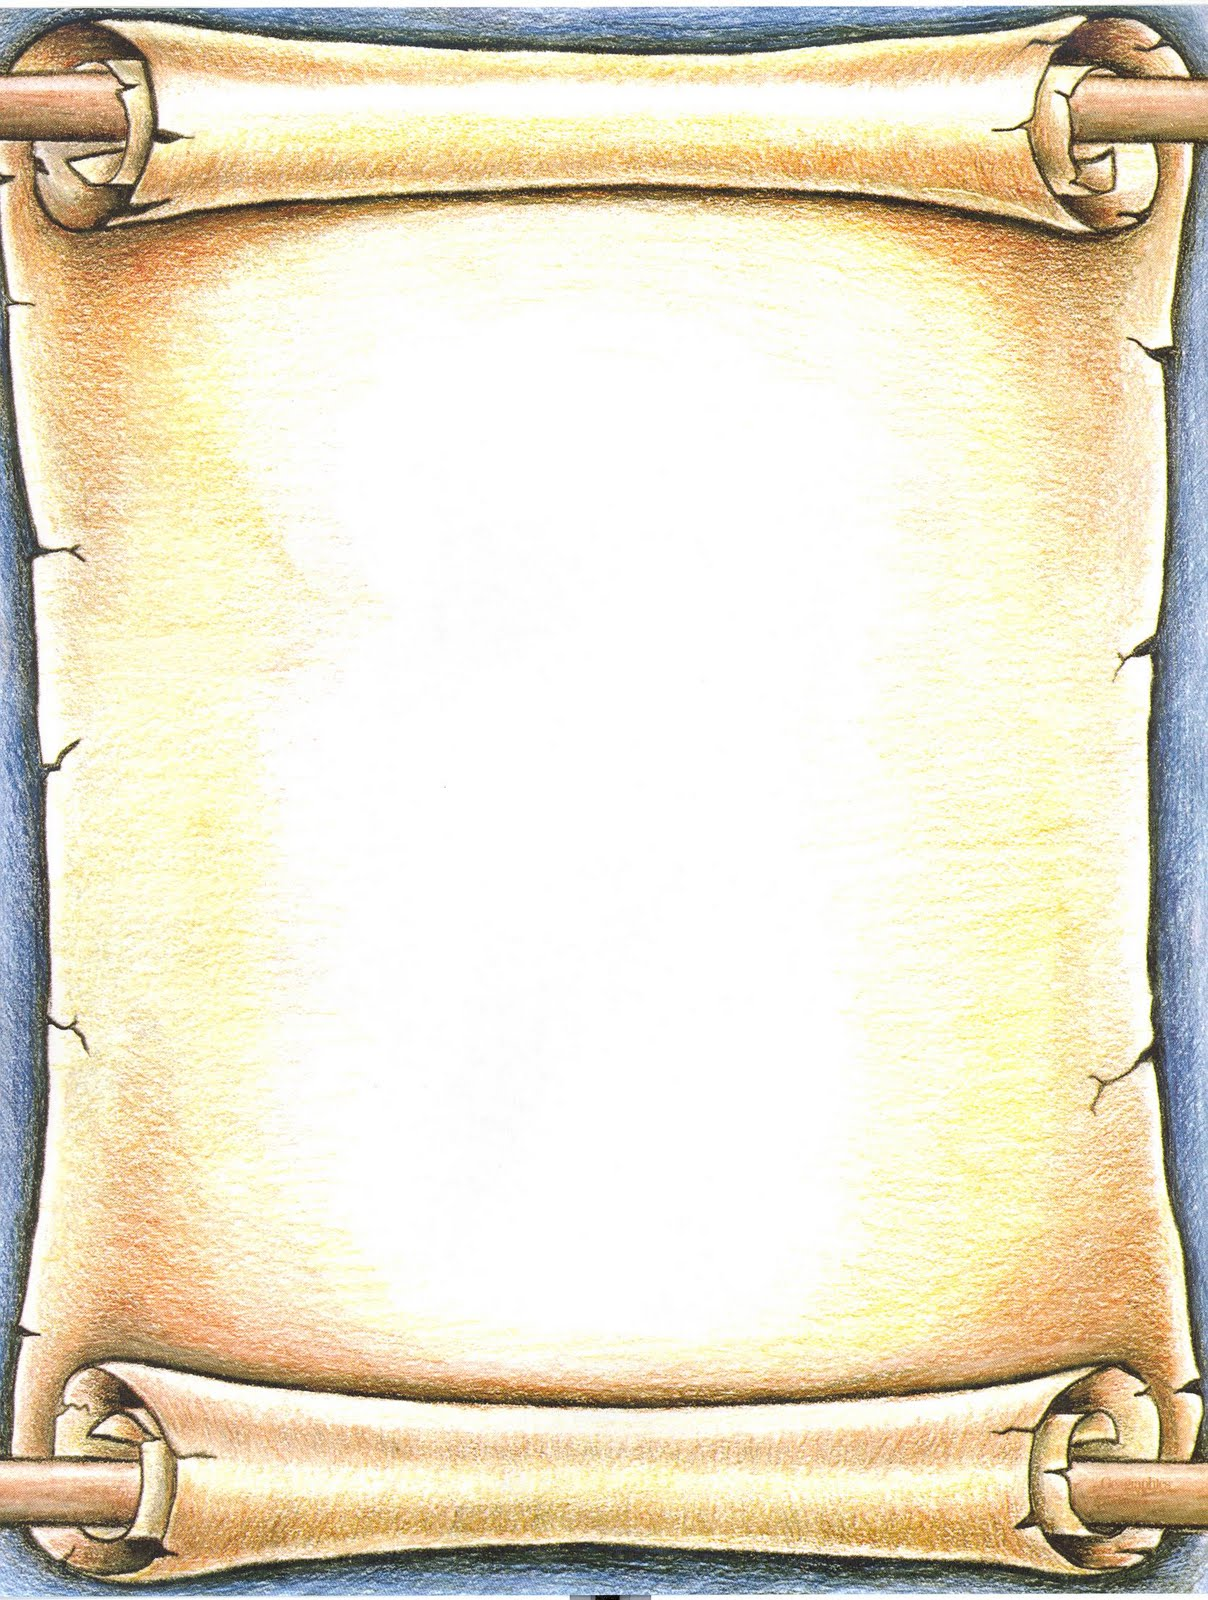 Drawn scroll paper border Scroll Ancient Scroll Download Clipart